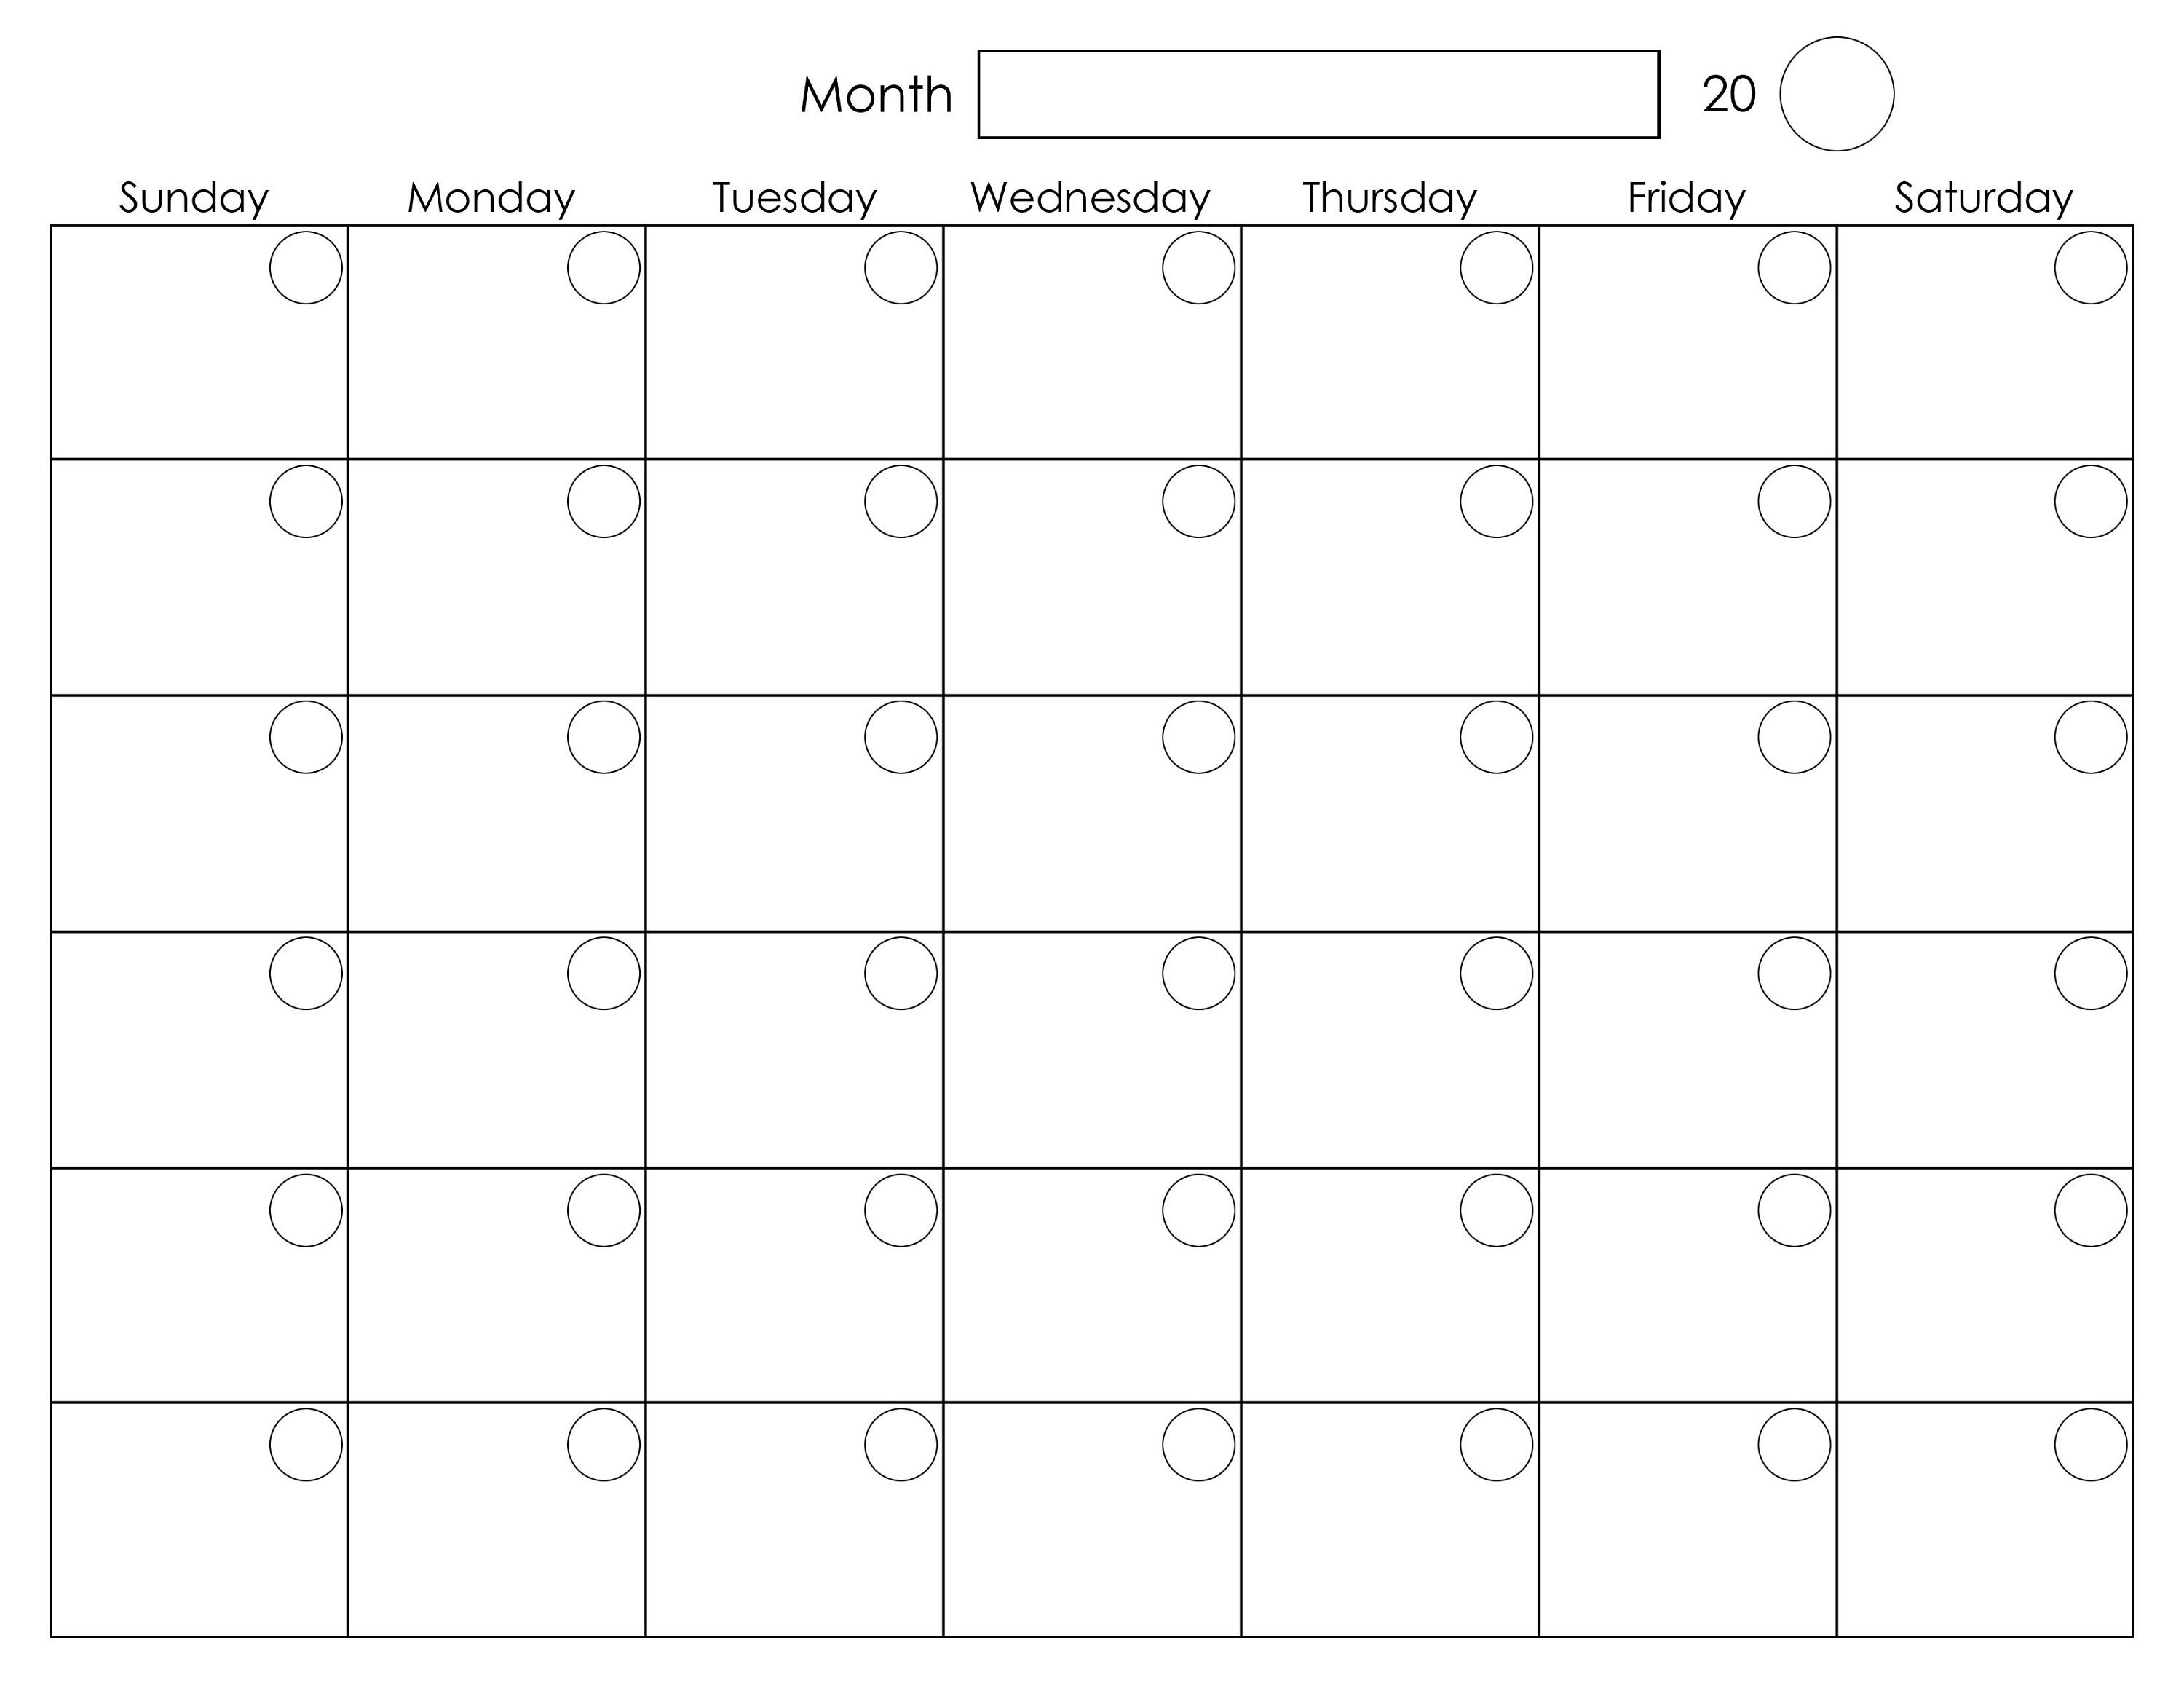 Printable Blank Monthly Calendar | Календарь Для Печати with Printable Monthly Calendar